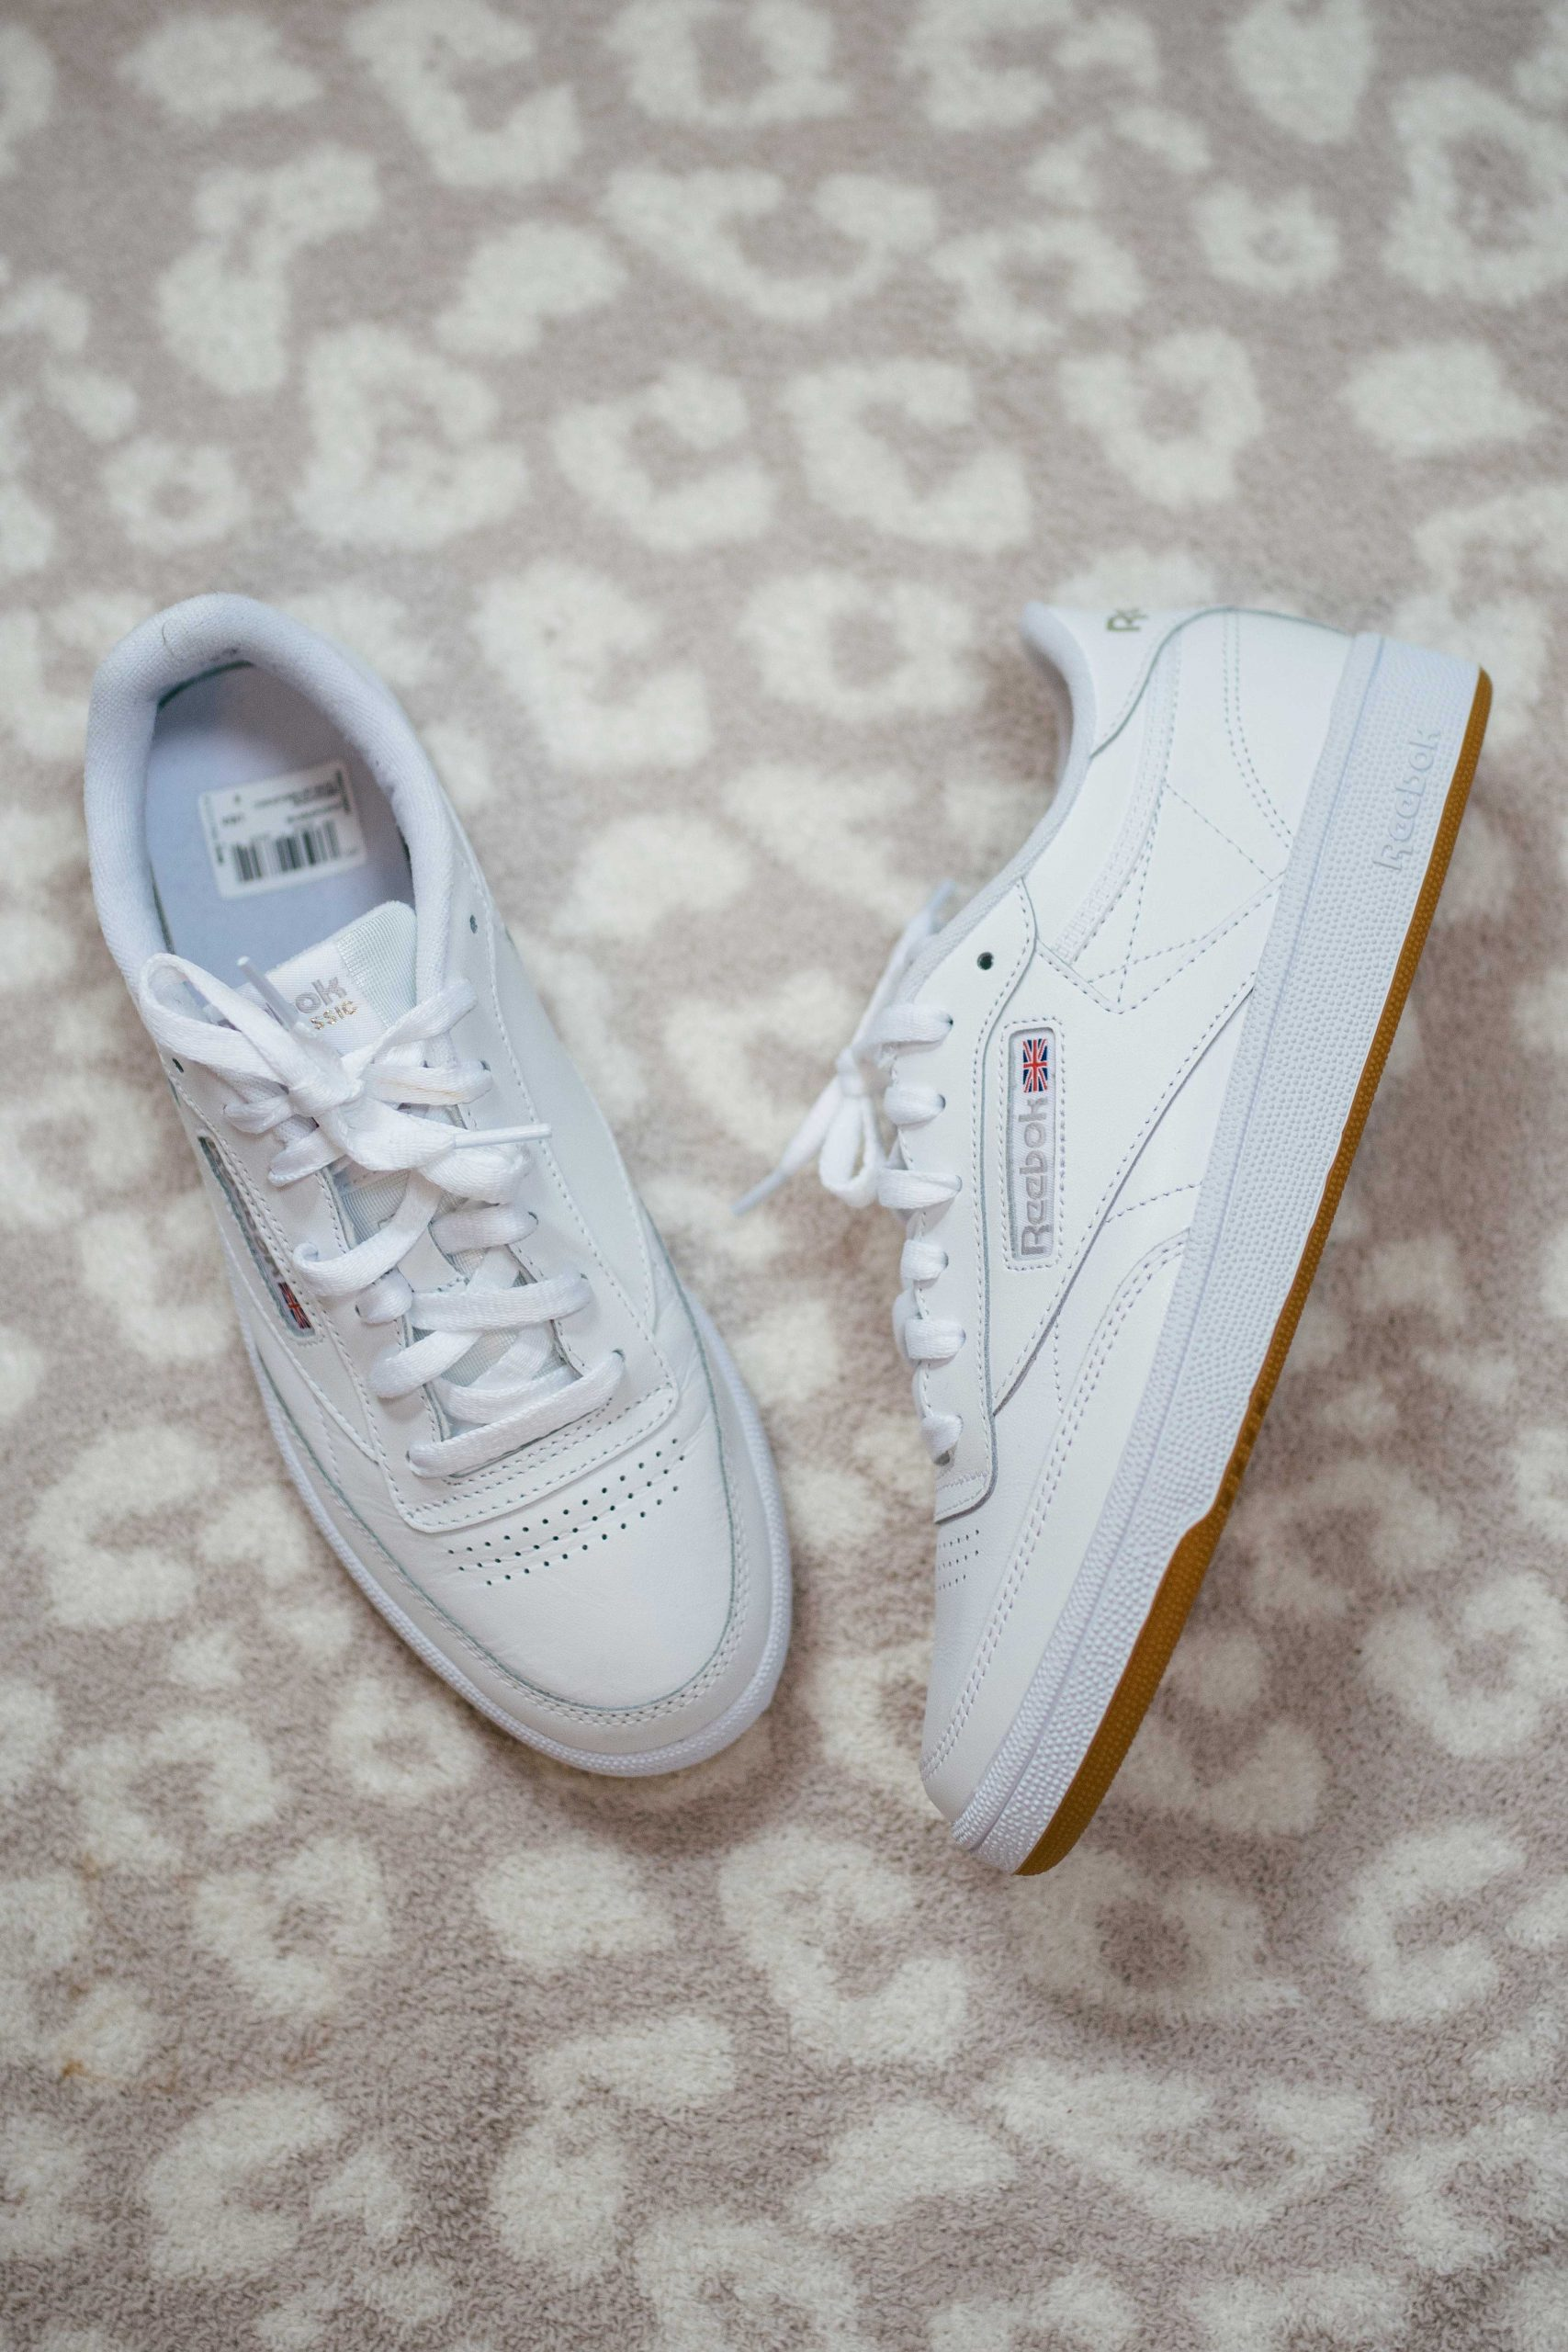 Virginia blogger, Lauren Dix, tries on 10 different pairs of white sneakers for the ultimate white sneaker review! The Reebok Club C 85 pictured here are included!